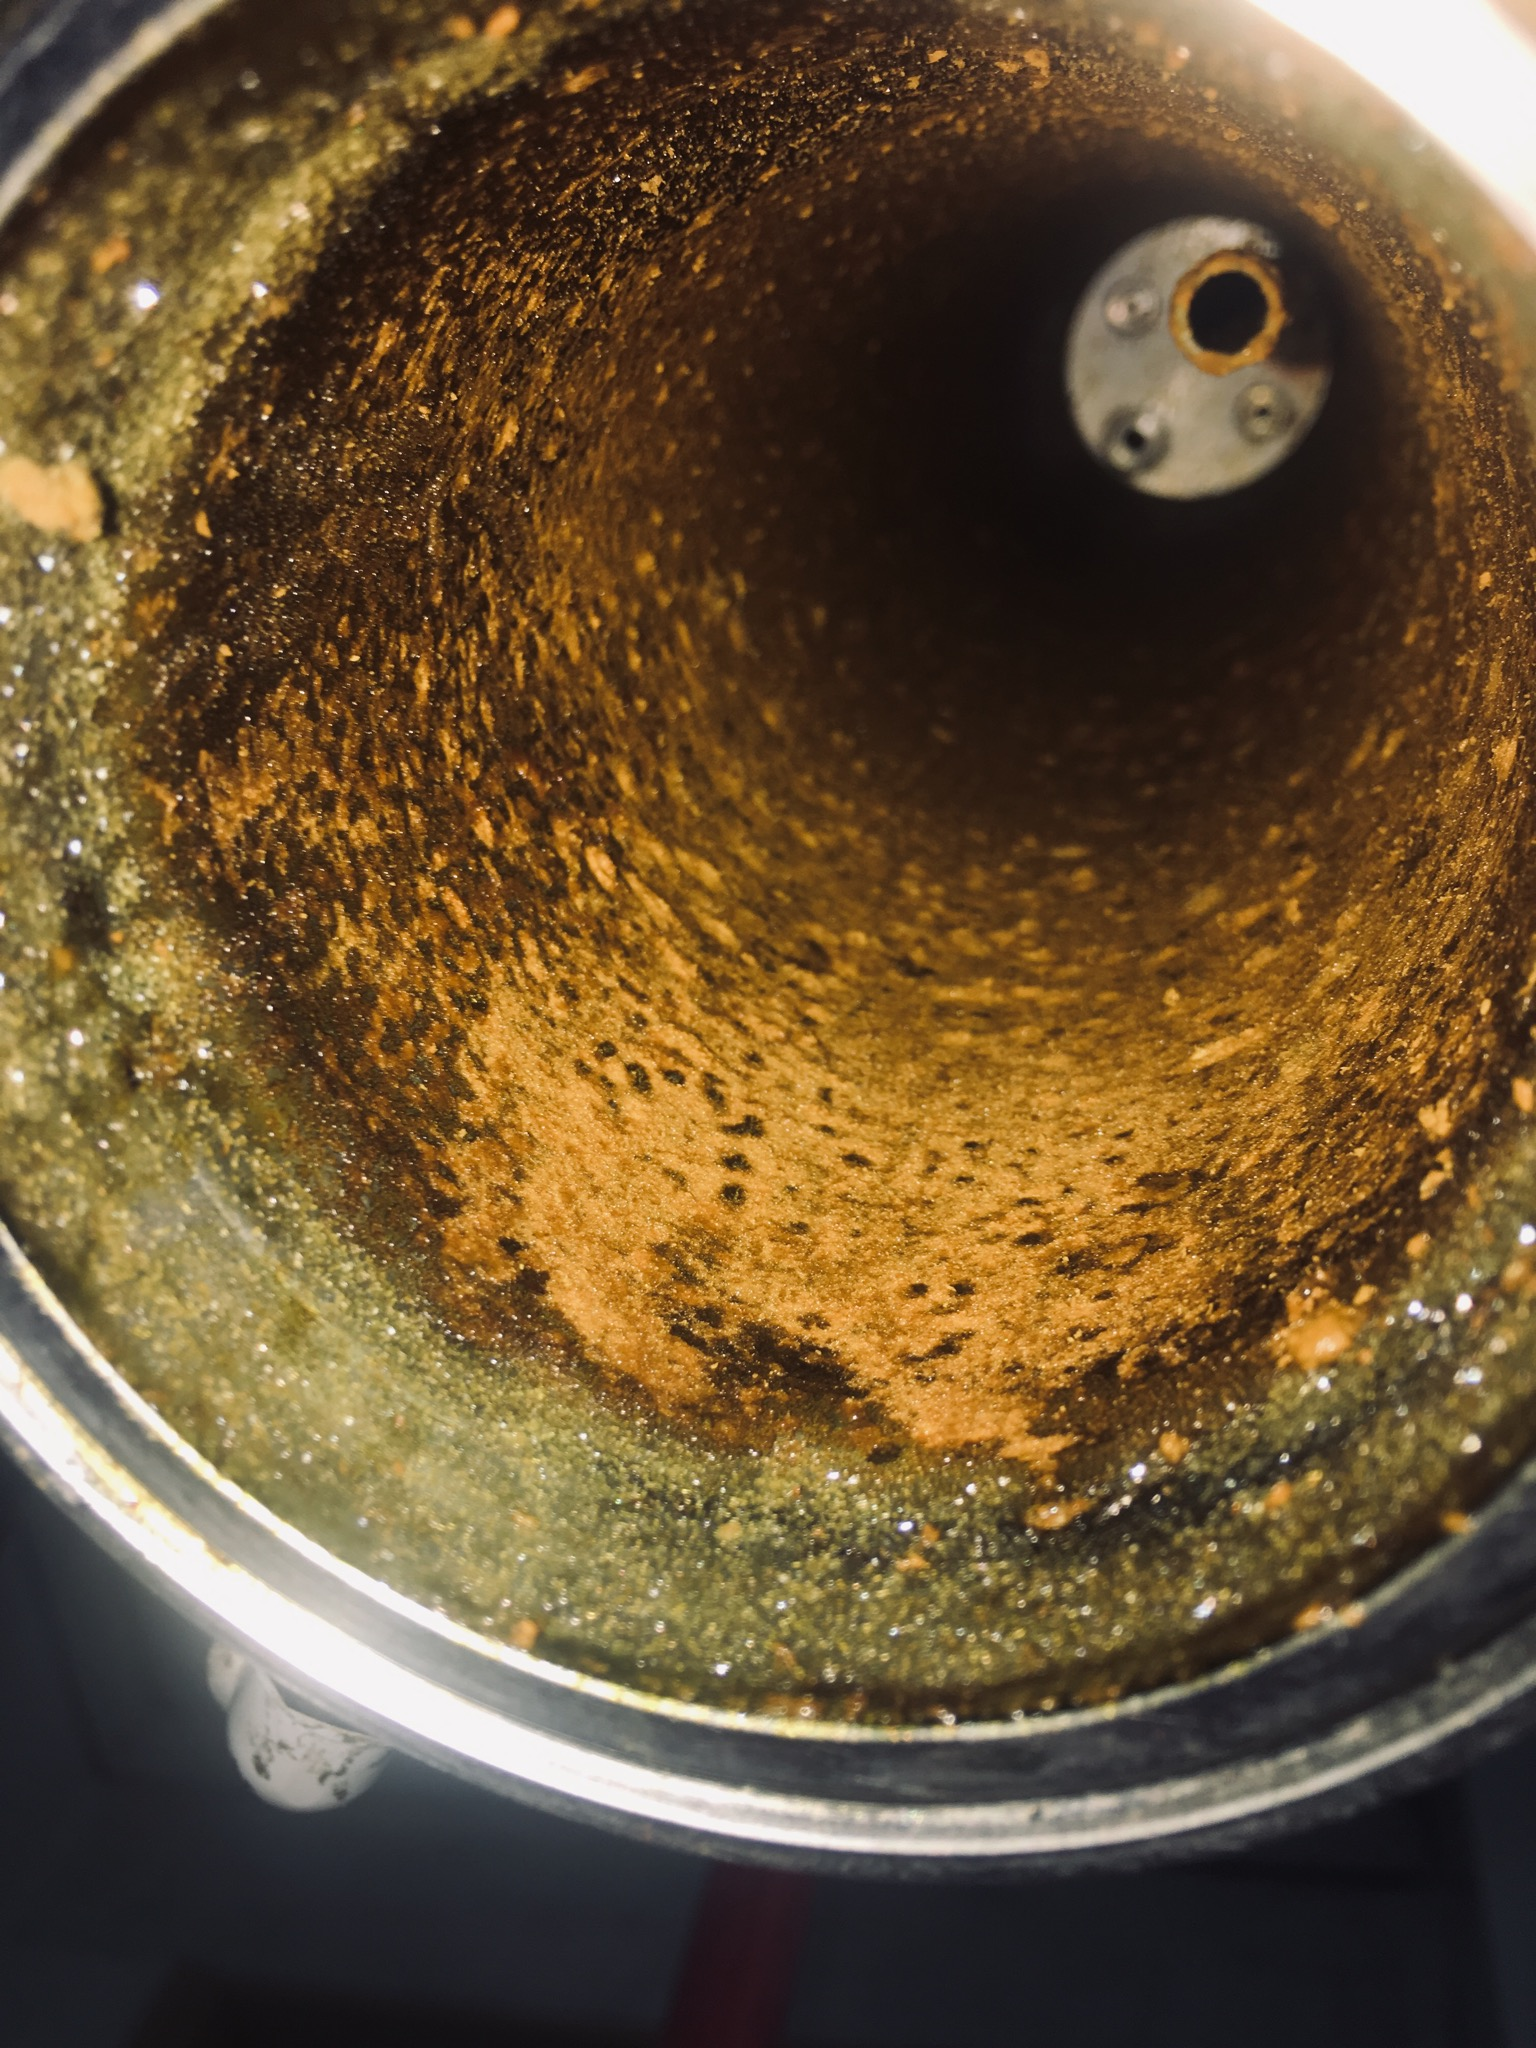 Decarbing co2 oil for vapes? - Extraction - Future4200